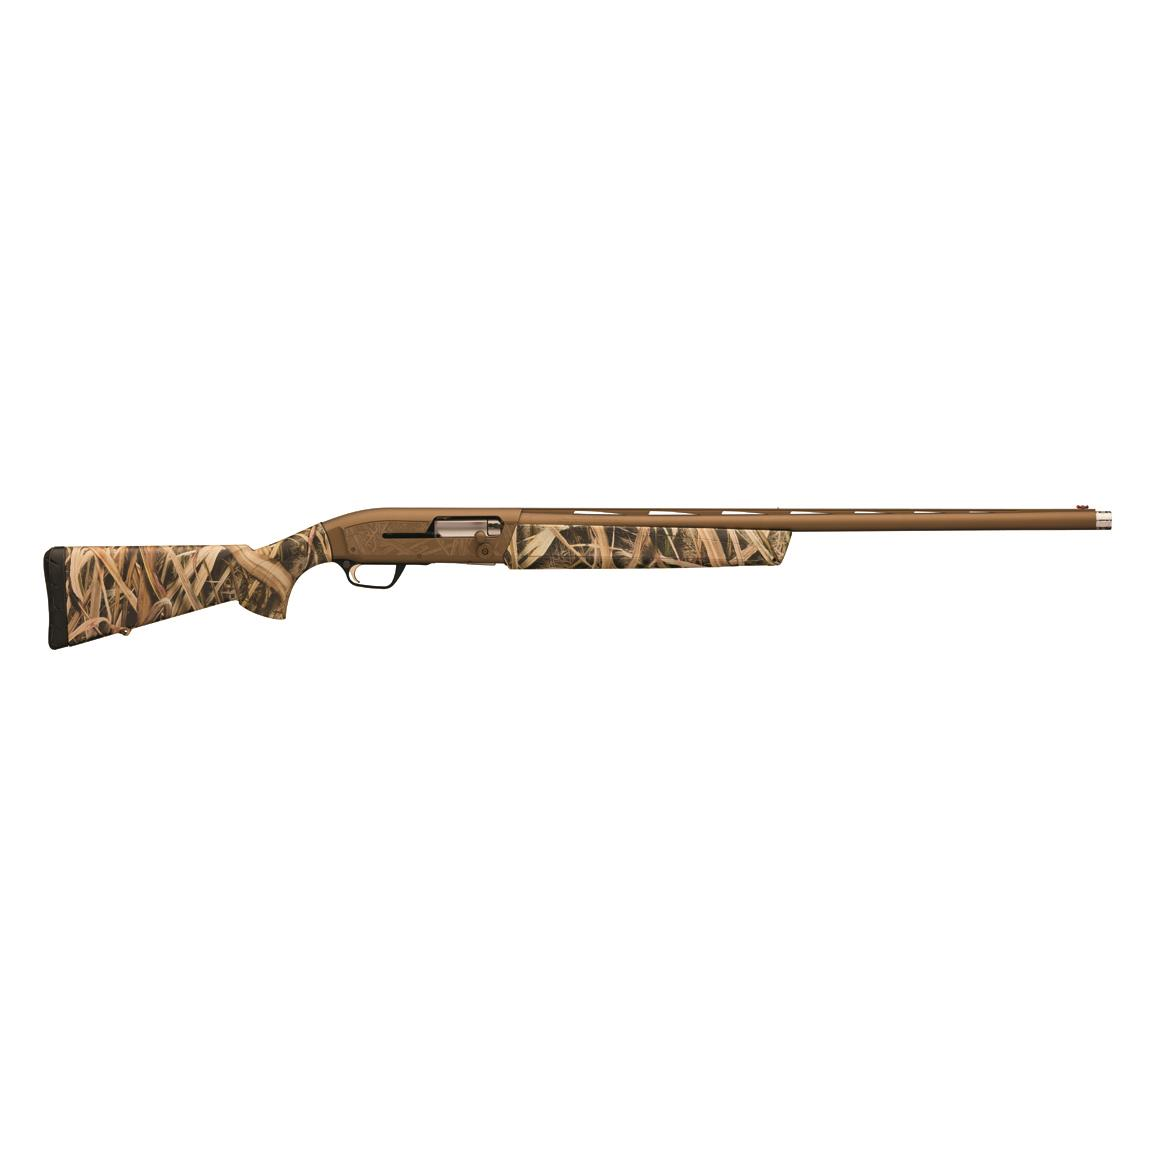 "Browning Maxus Wicked Wing, Semi-Automatic, 12 Gauge, 26"" Barrel, 3"" Chamber, 4+1 Rounds"